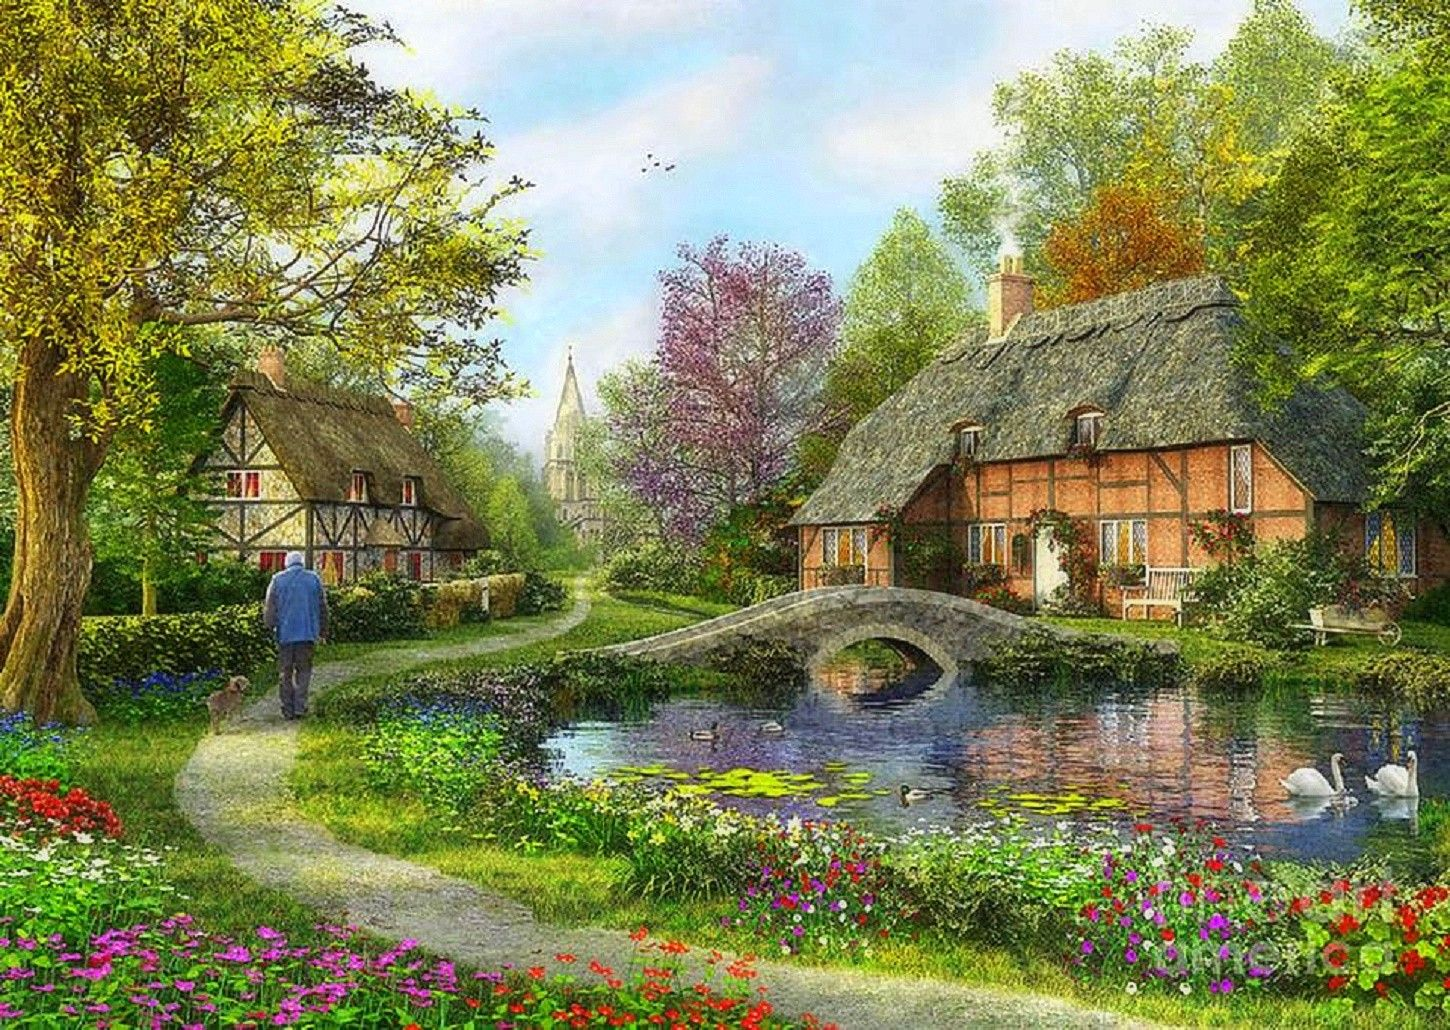 Beautiful English Flower Garden houses english cottage flowers gardens lakes attractions dreams